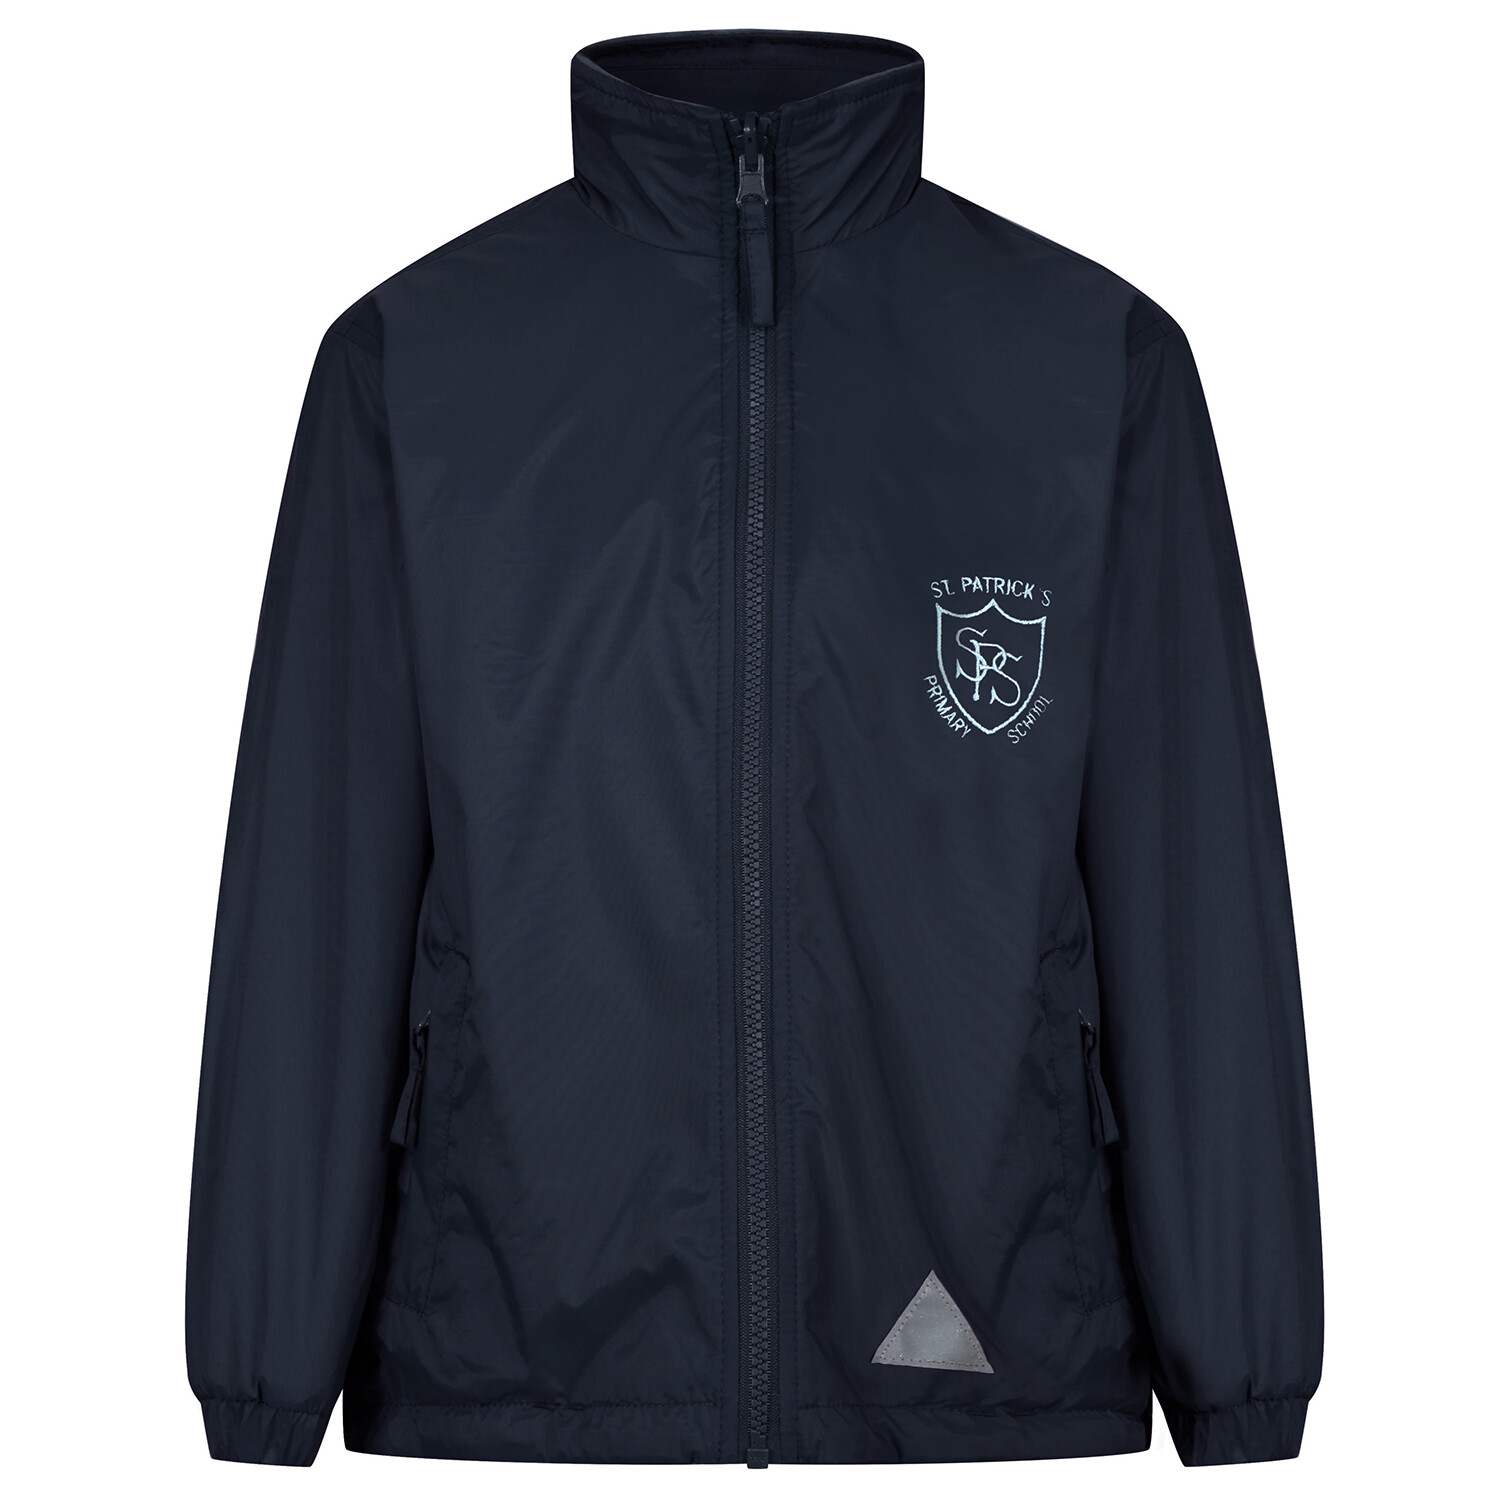 St Patrick's Primary 'Lightweight' Rain Jacket (Fleece lined)